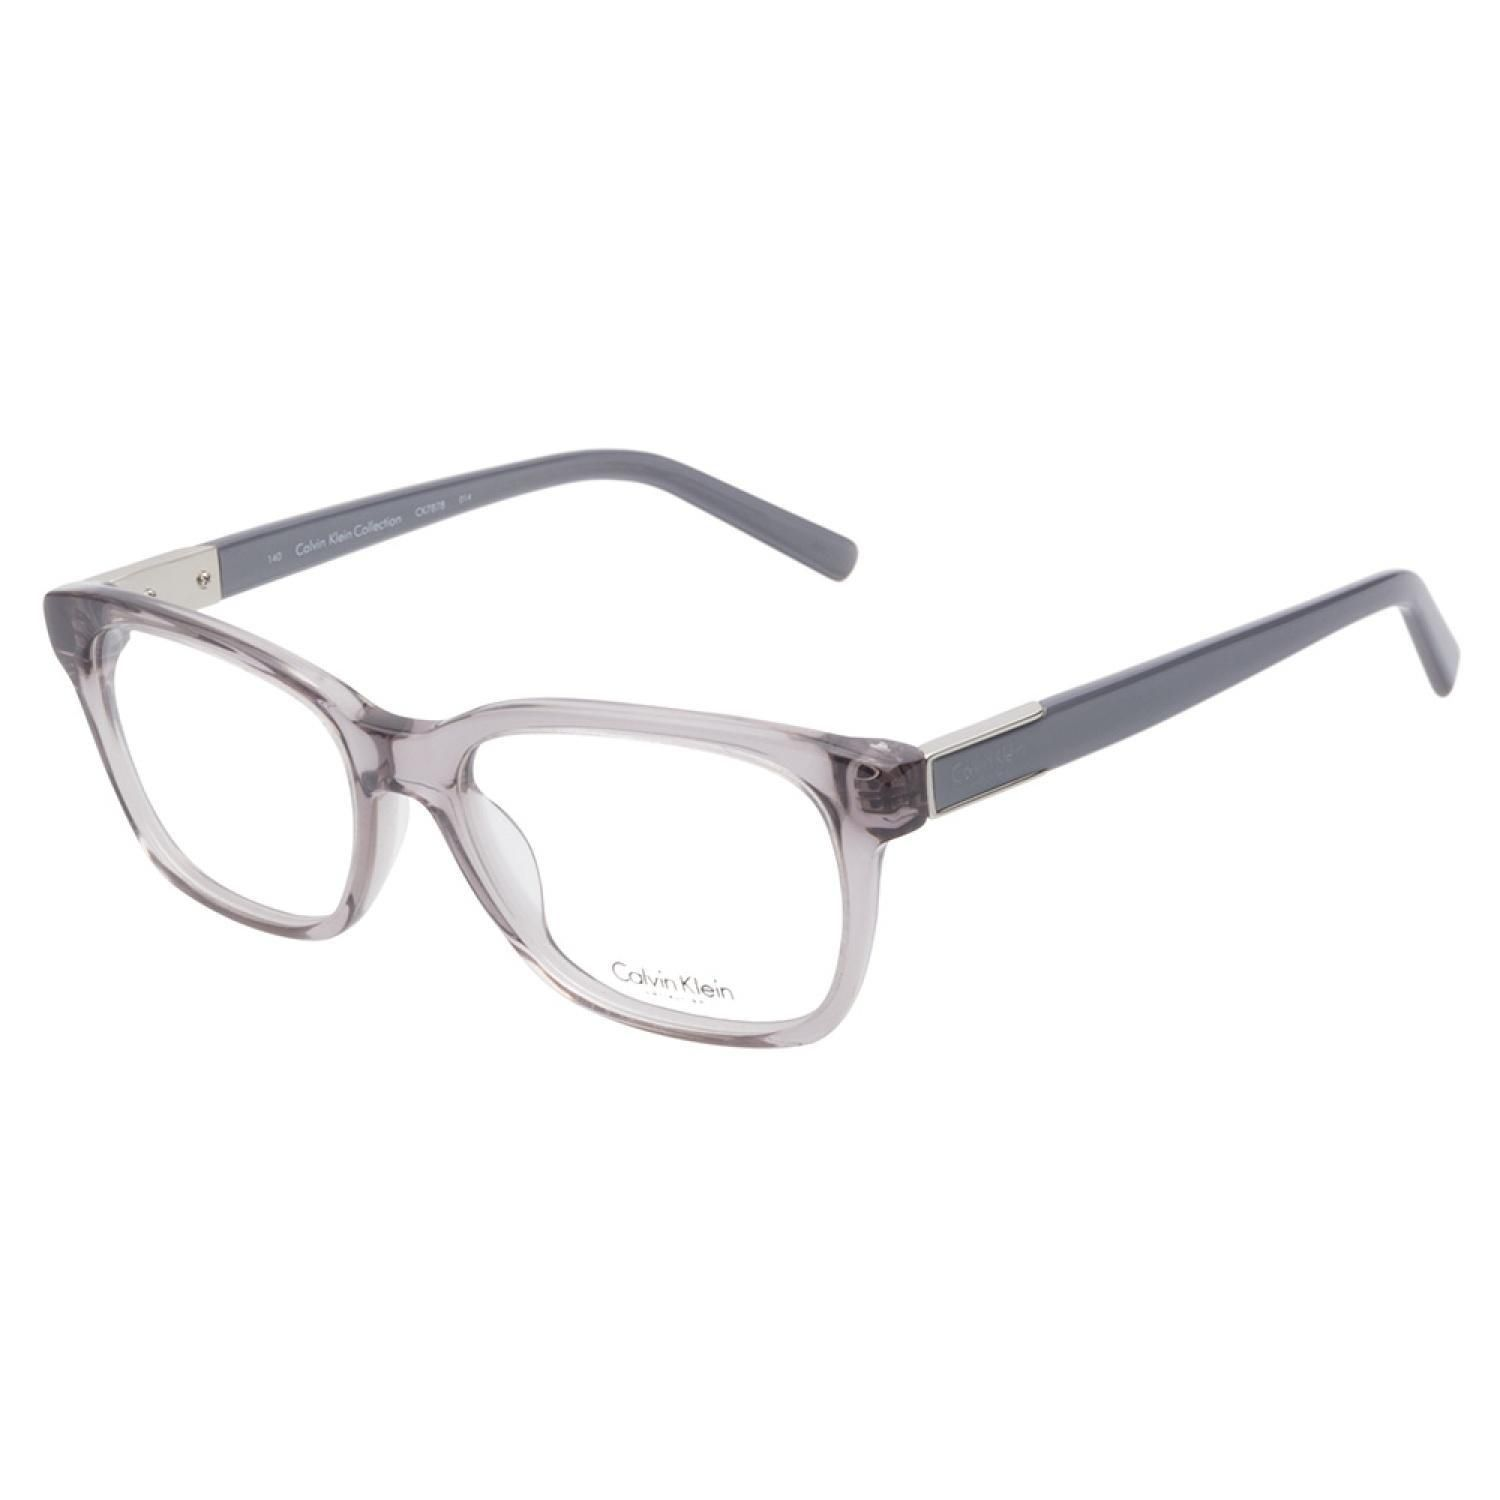 01dc9dd2fd79 Calvin Klein CK7878 014 Grey eyeglasses are crisp and clear. This  transparent frame comes in hazy grey acetate in a demure style.